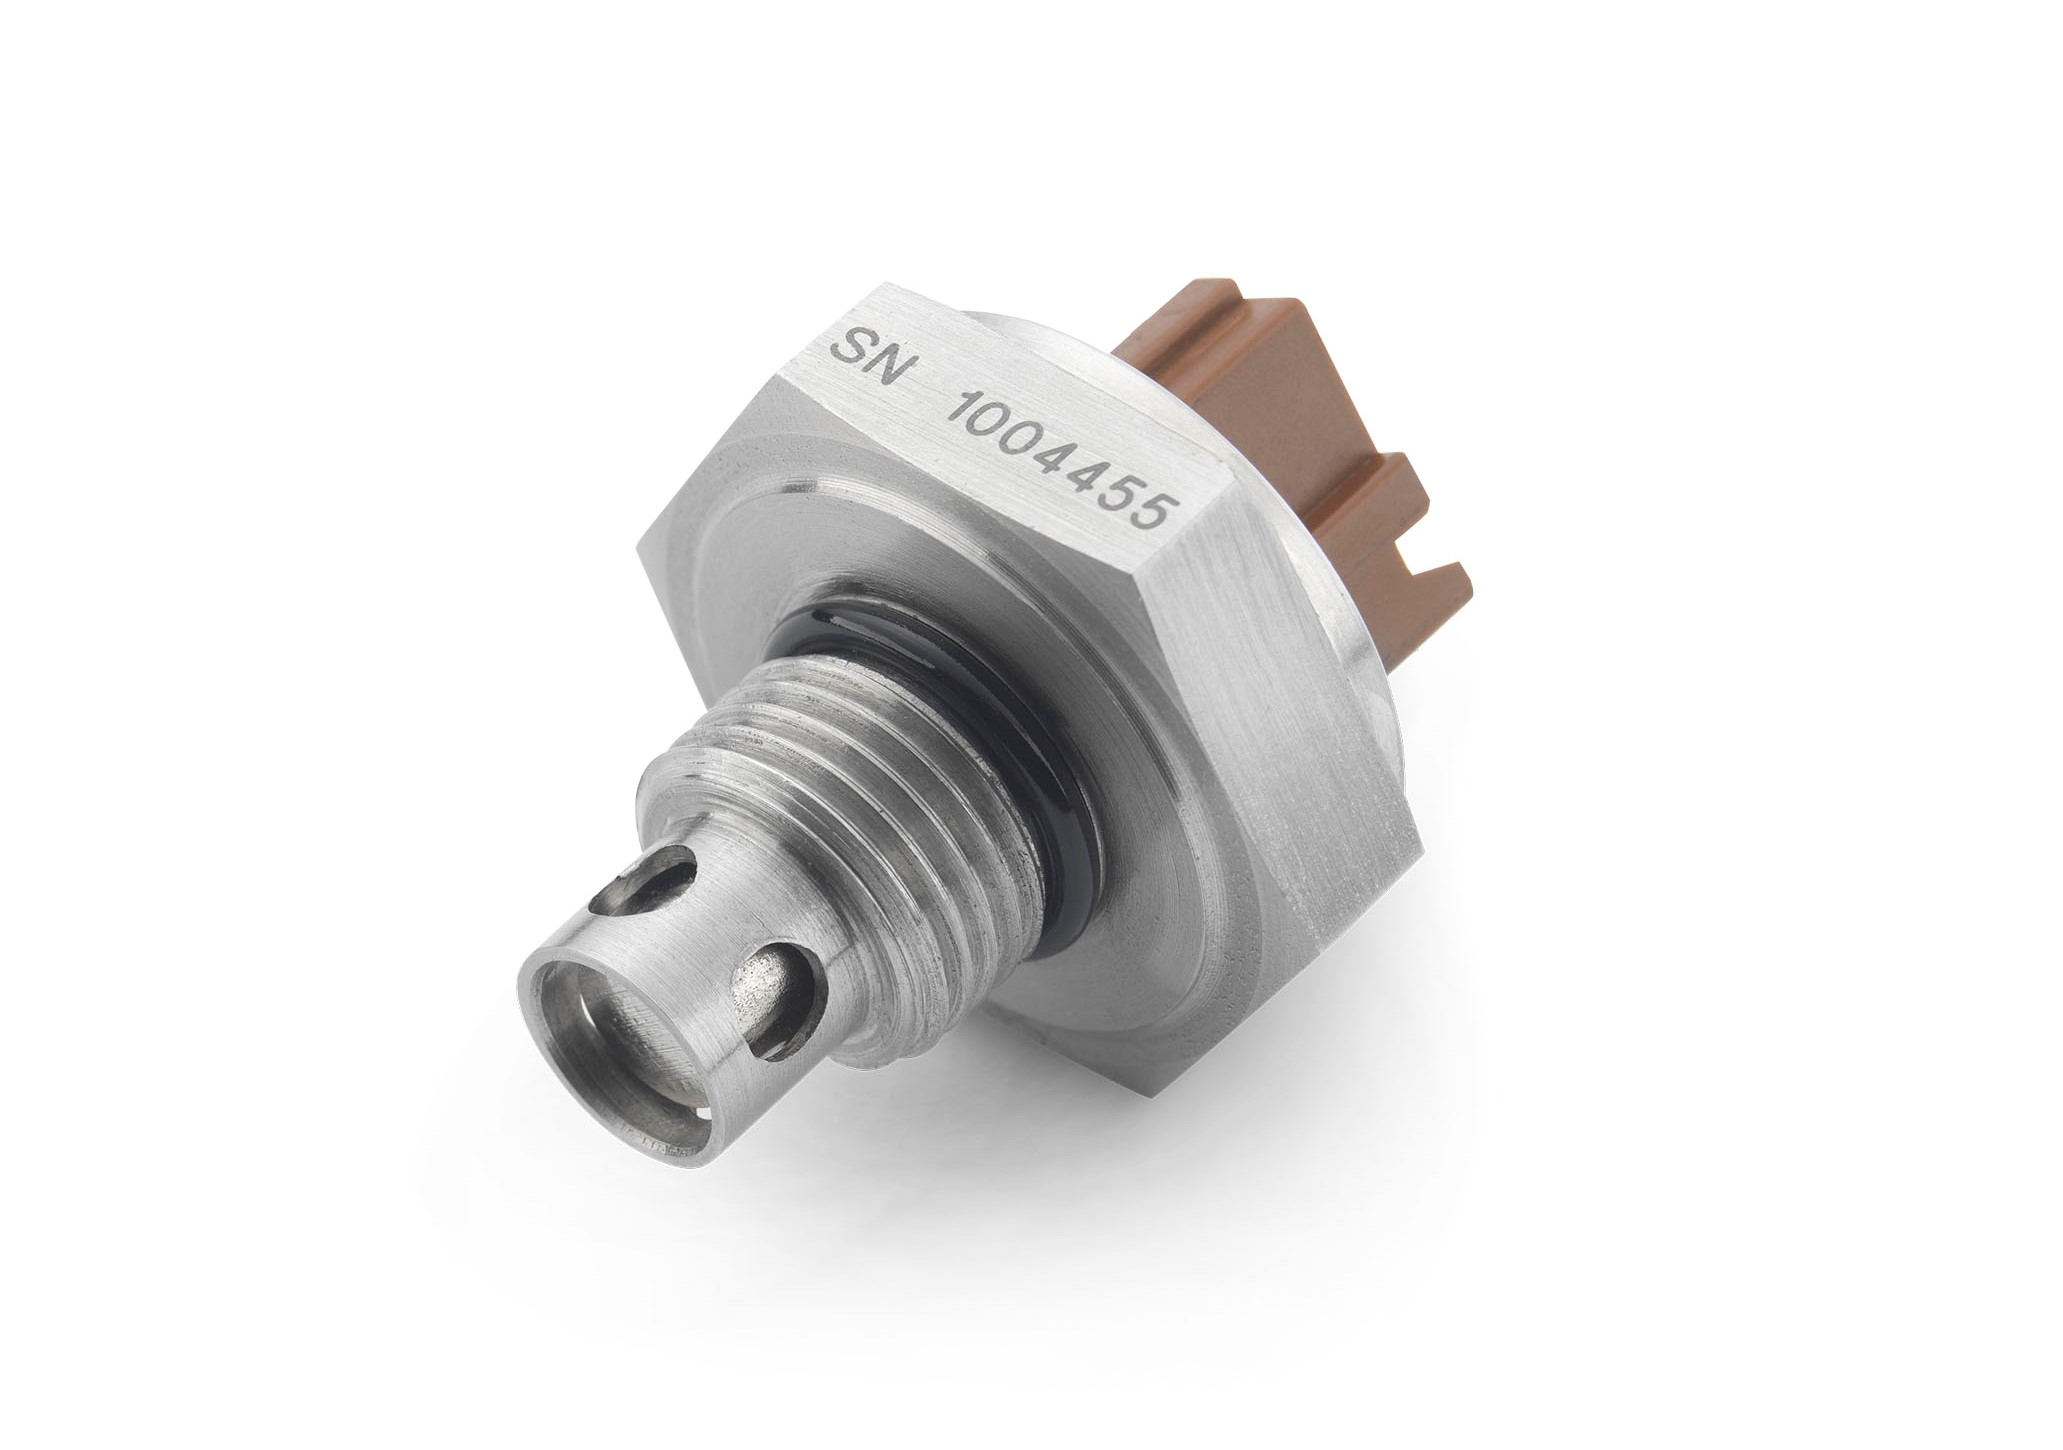 OQSx-G2 IM Integrated Real Time Oil Condition Analysis Sensor System